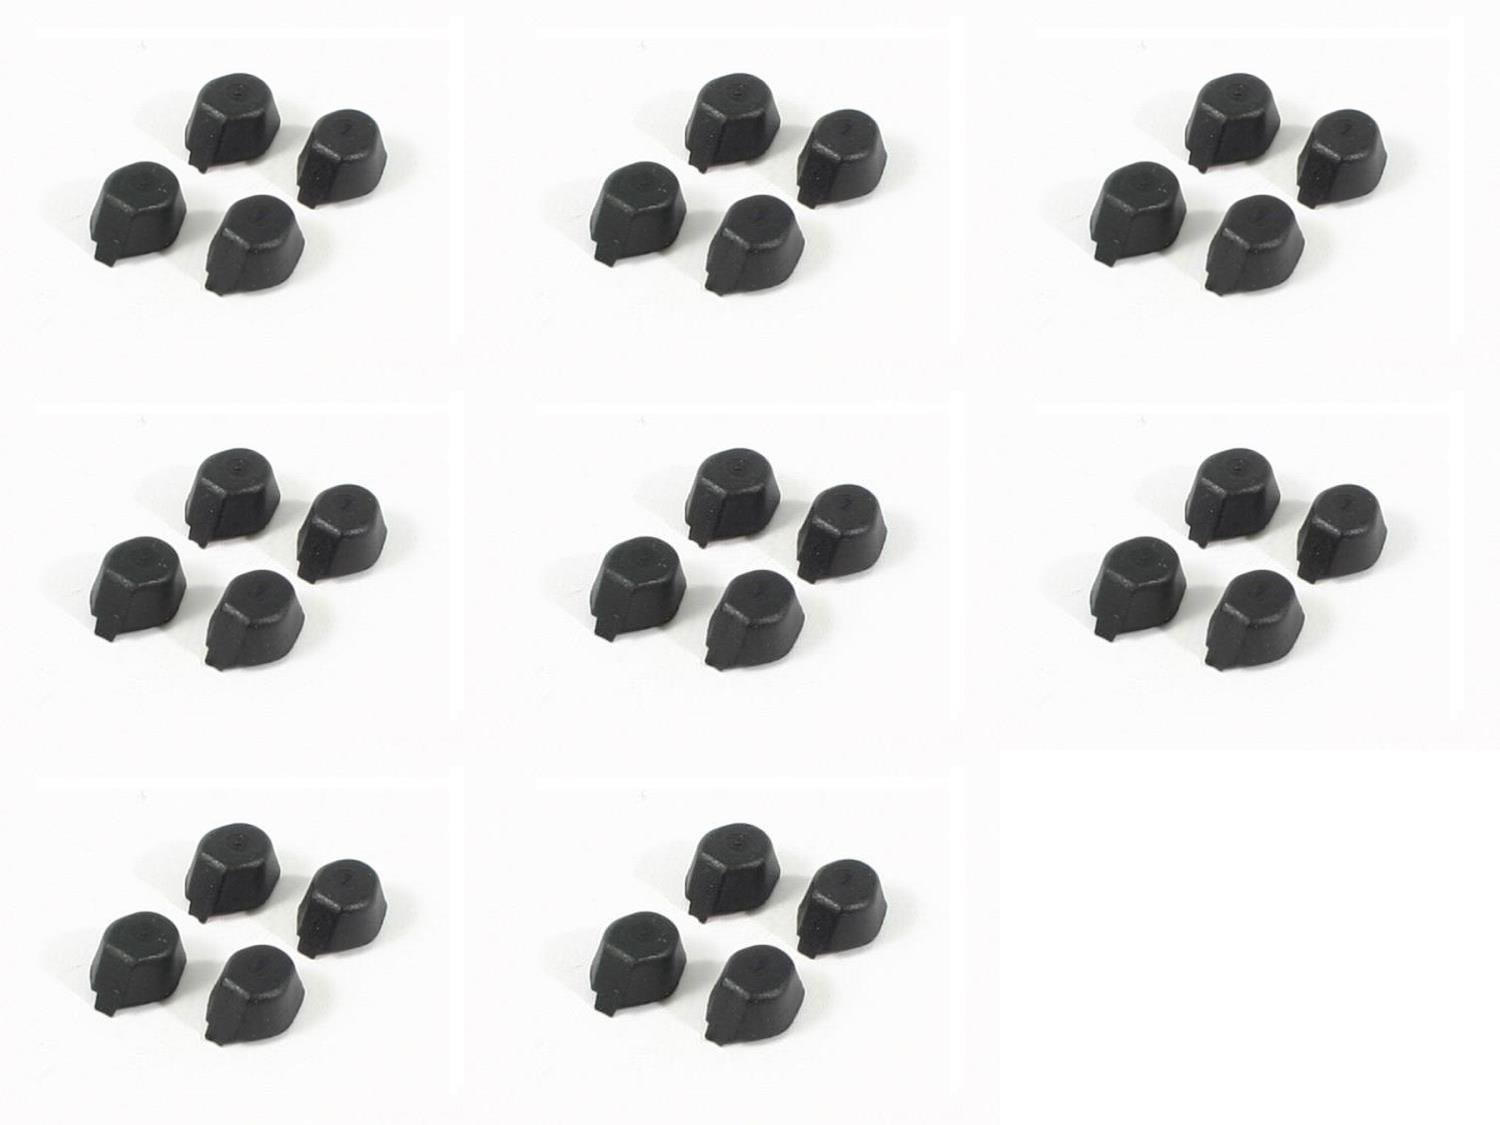 8 x Quantity of Hubsan X4 H107C Rubber Feet Protection Upgrade 4X Quadcopter Part - FAST FREE SHIPPING FROM Orlando, Florida USA!